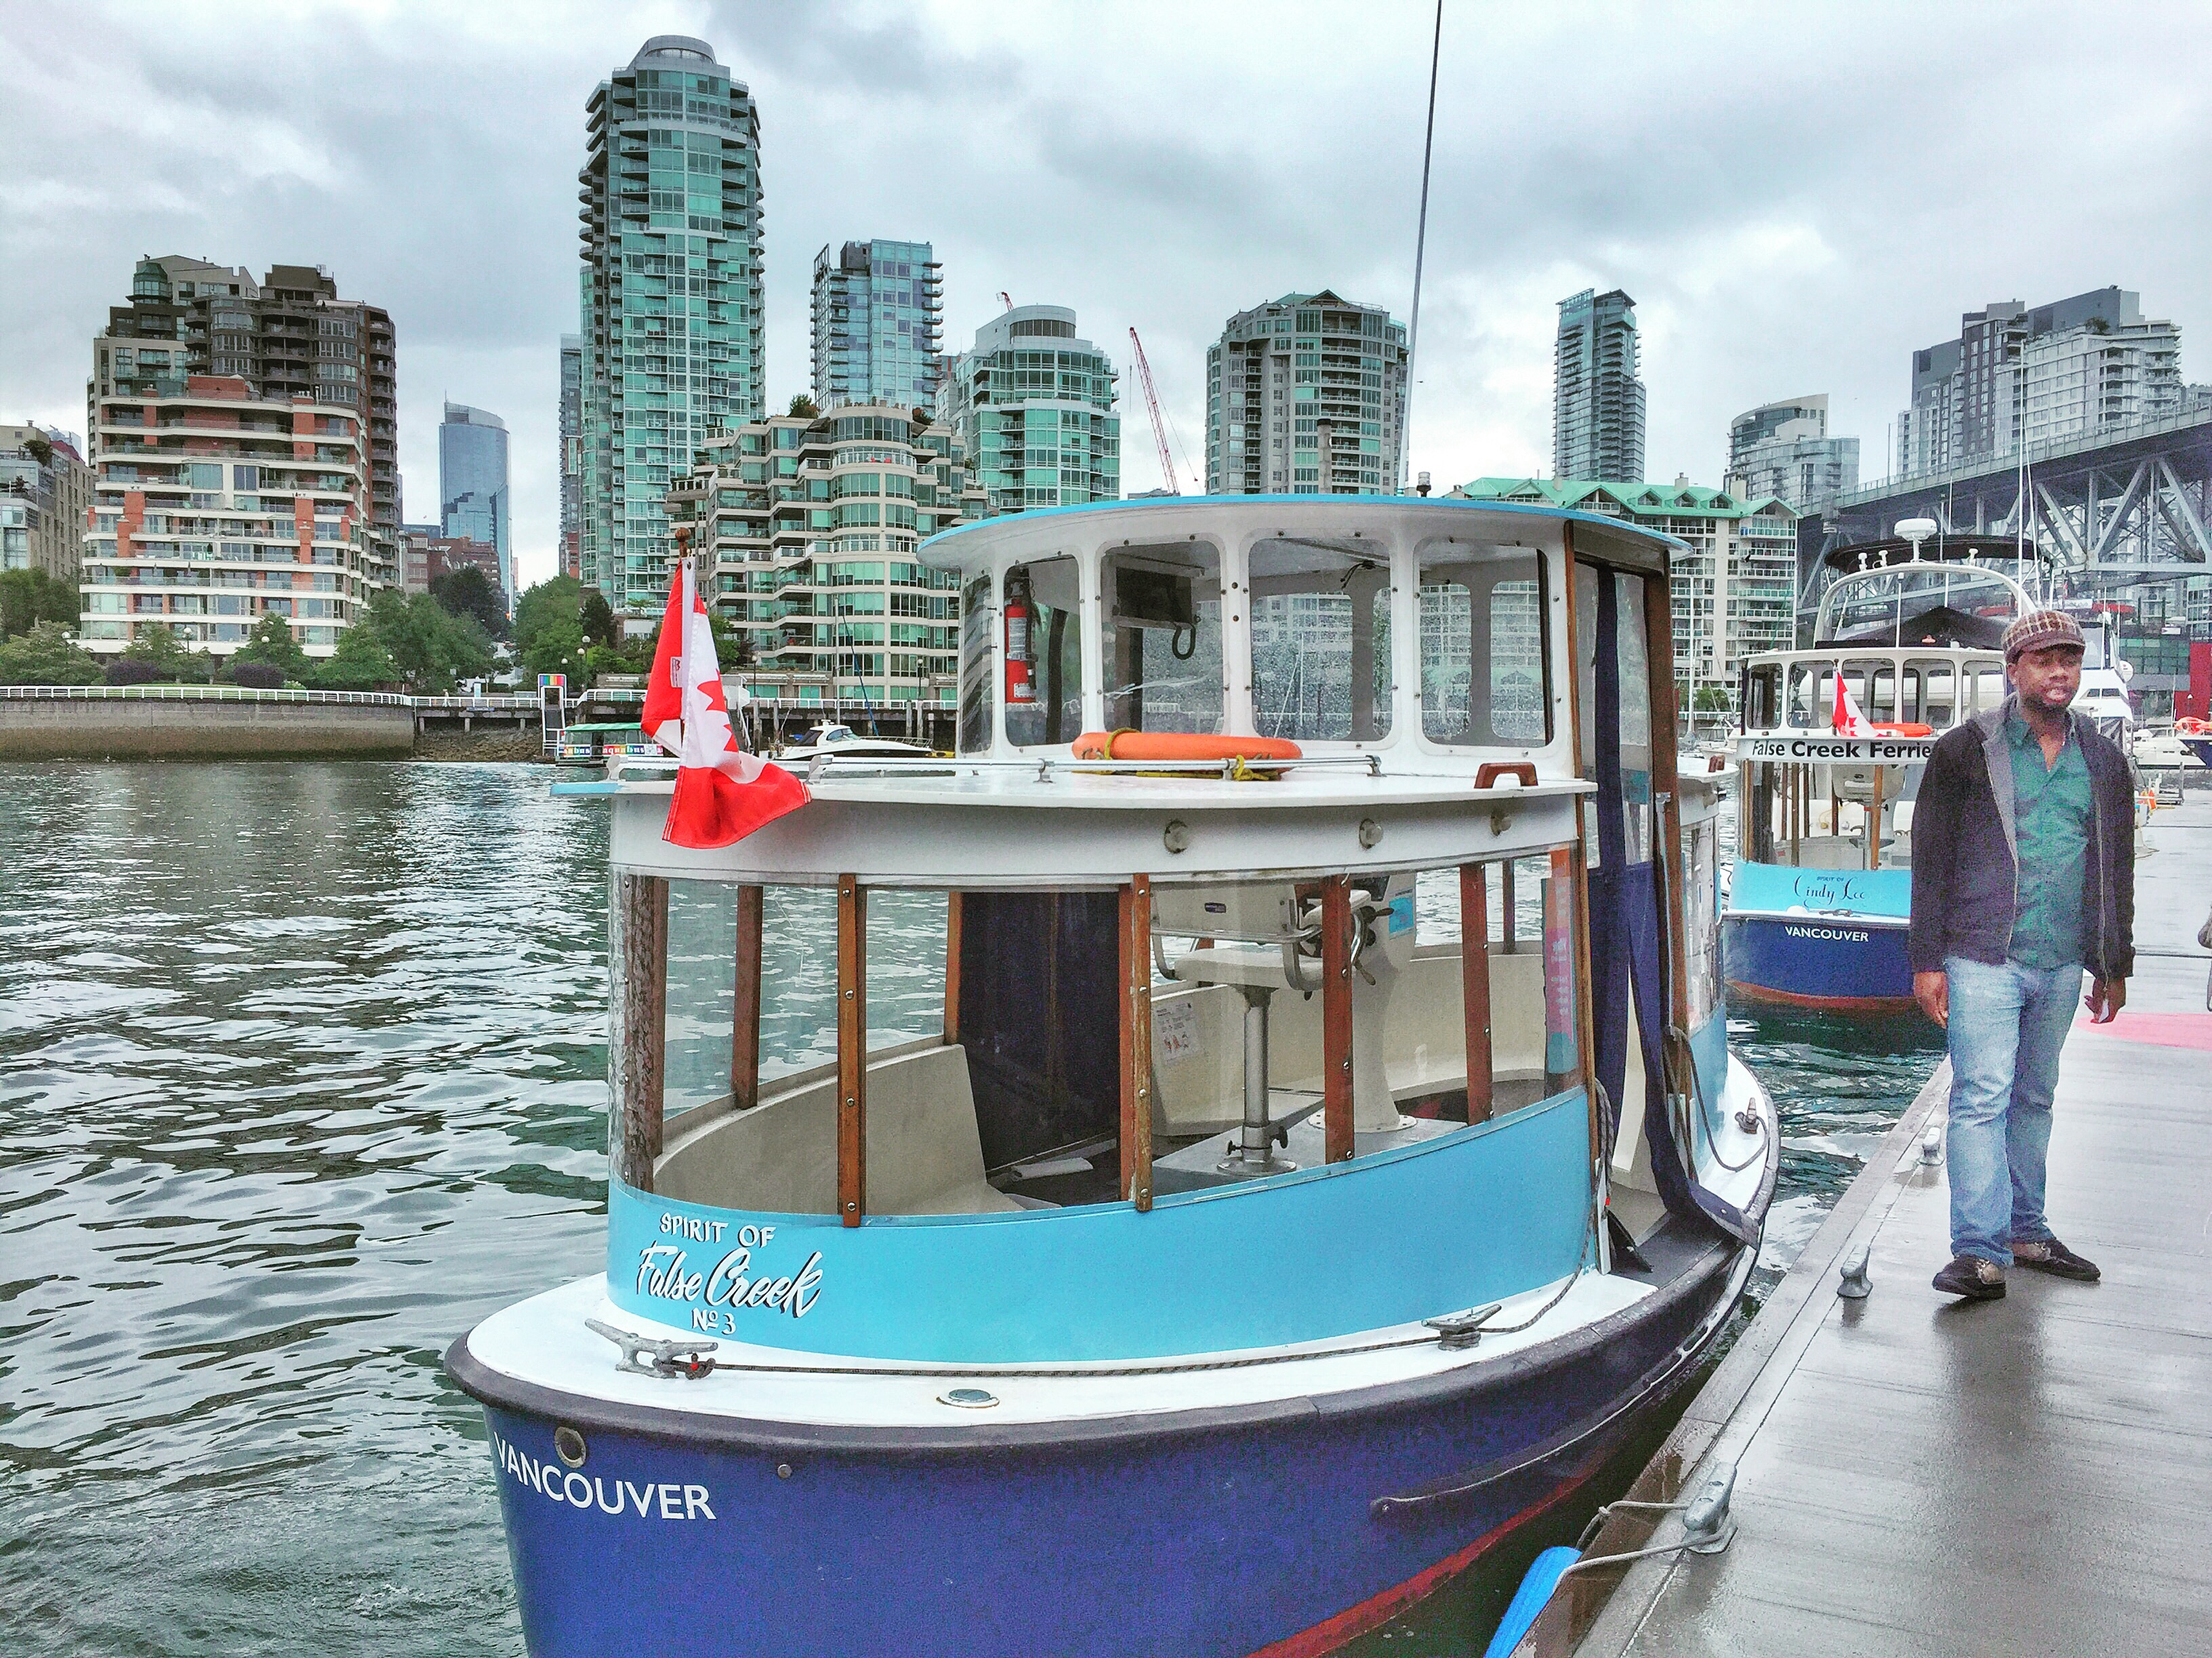 Ferry to Granville Island Context Travel